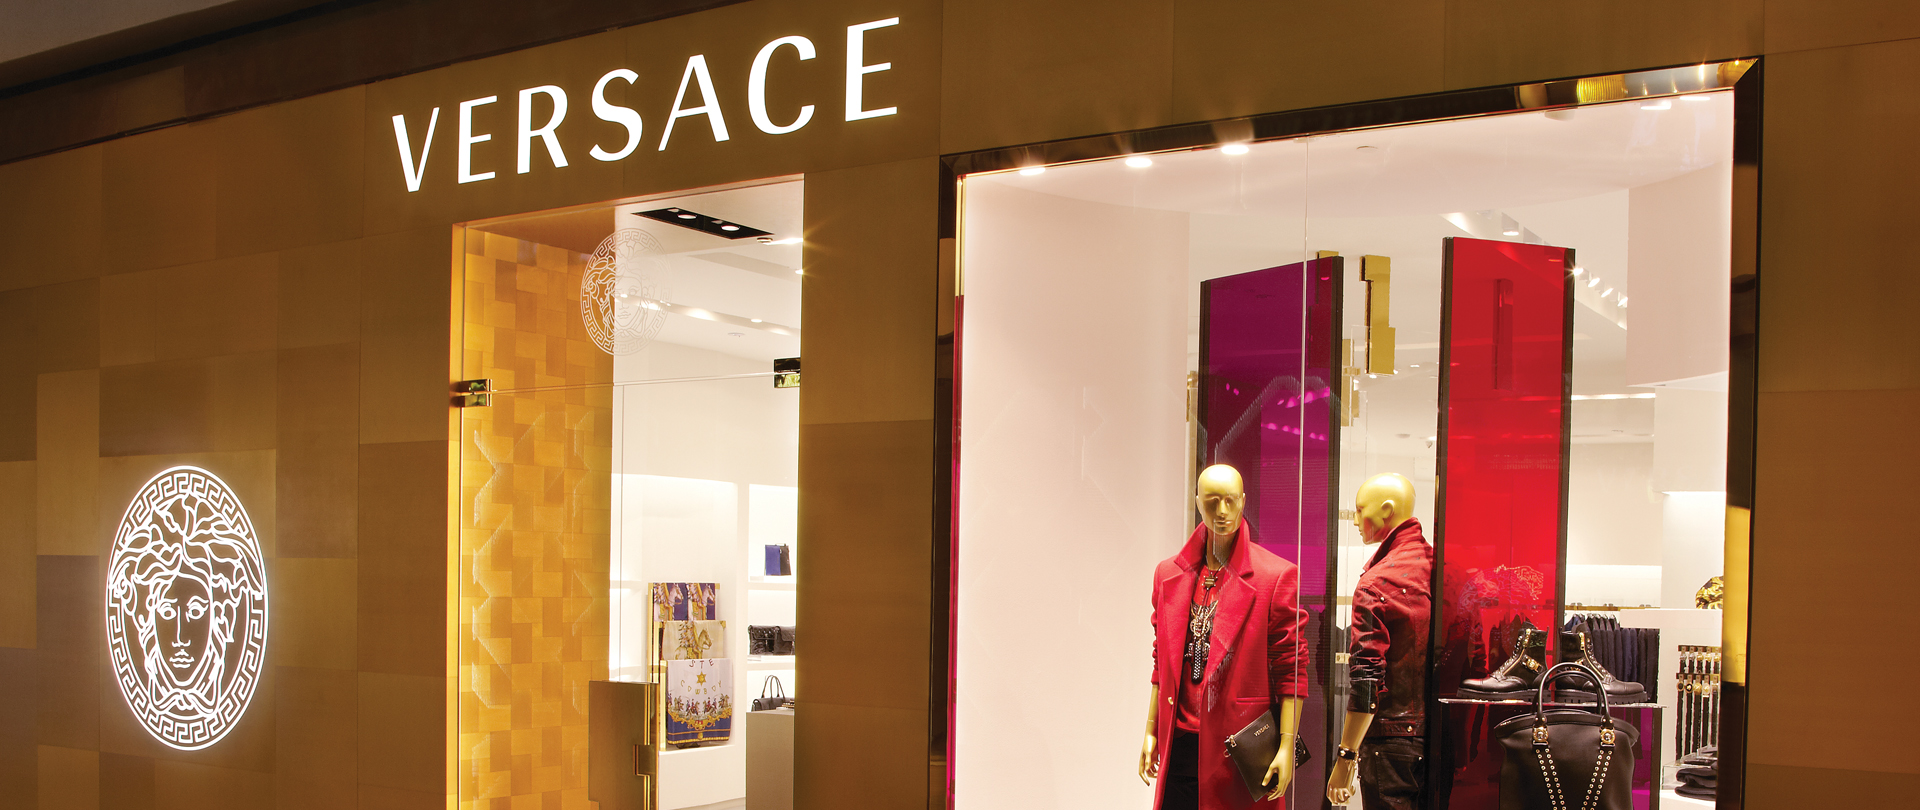 VERSACE_CROPPED